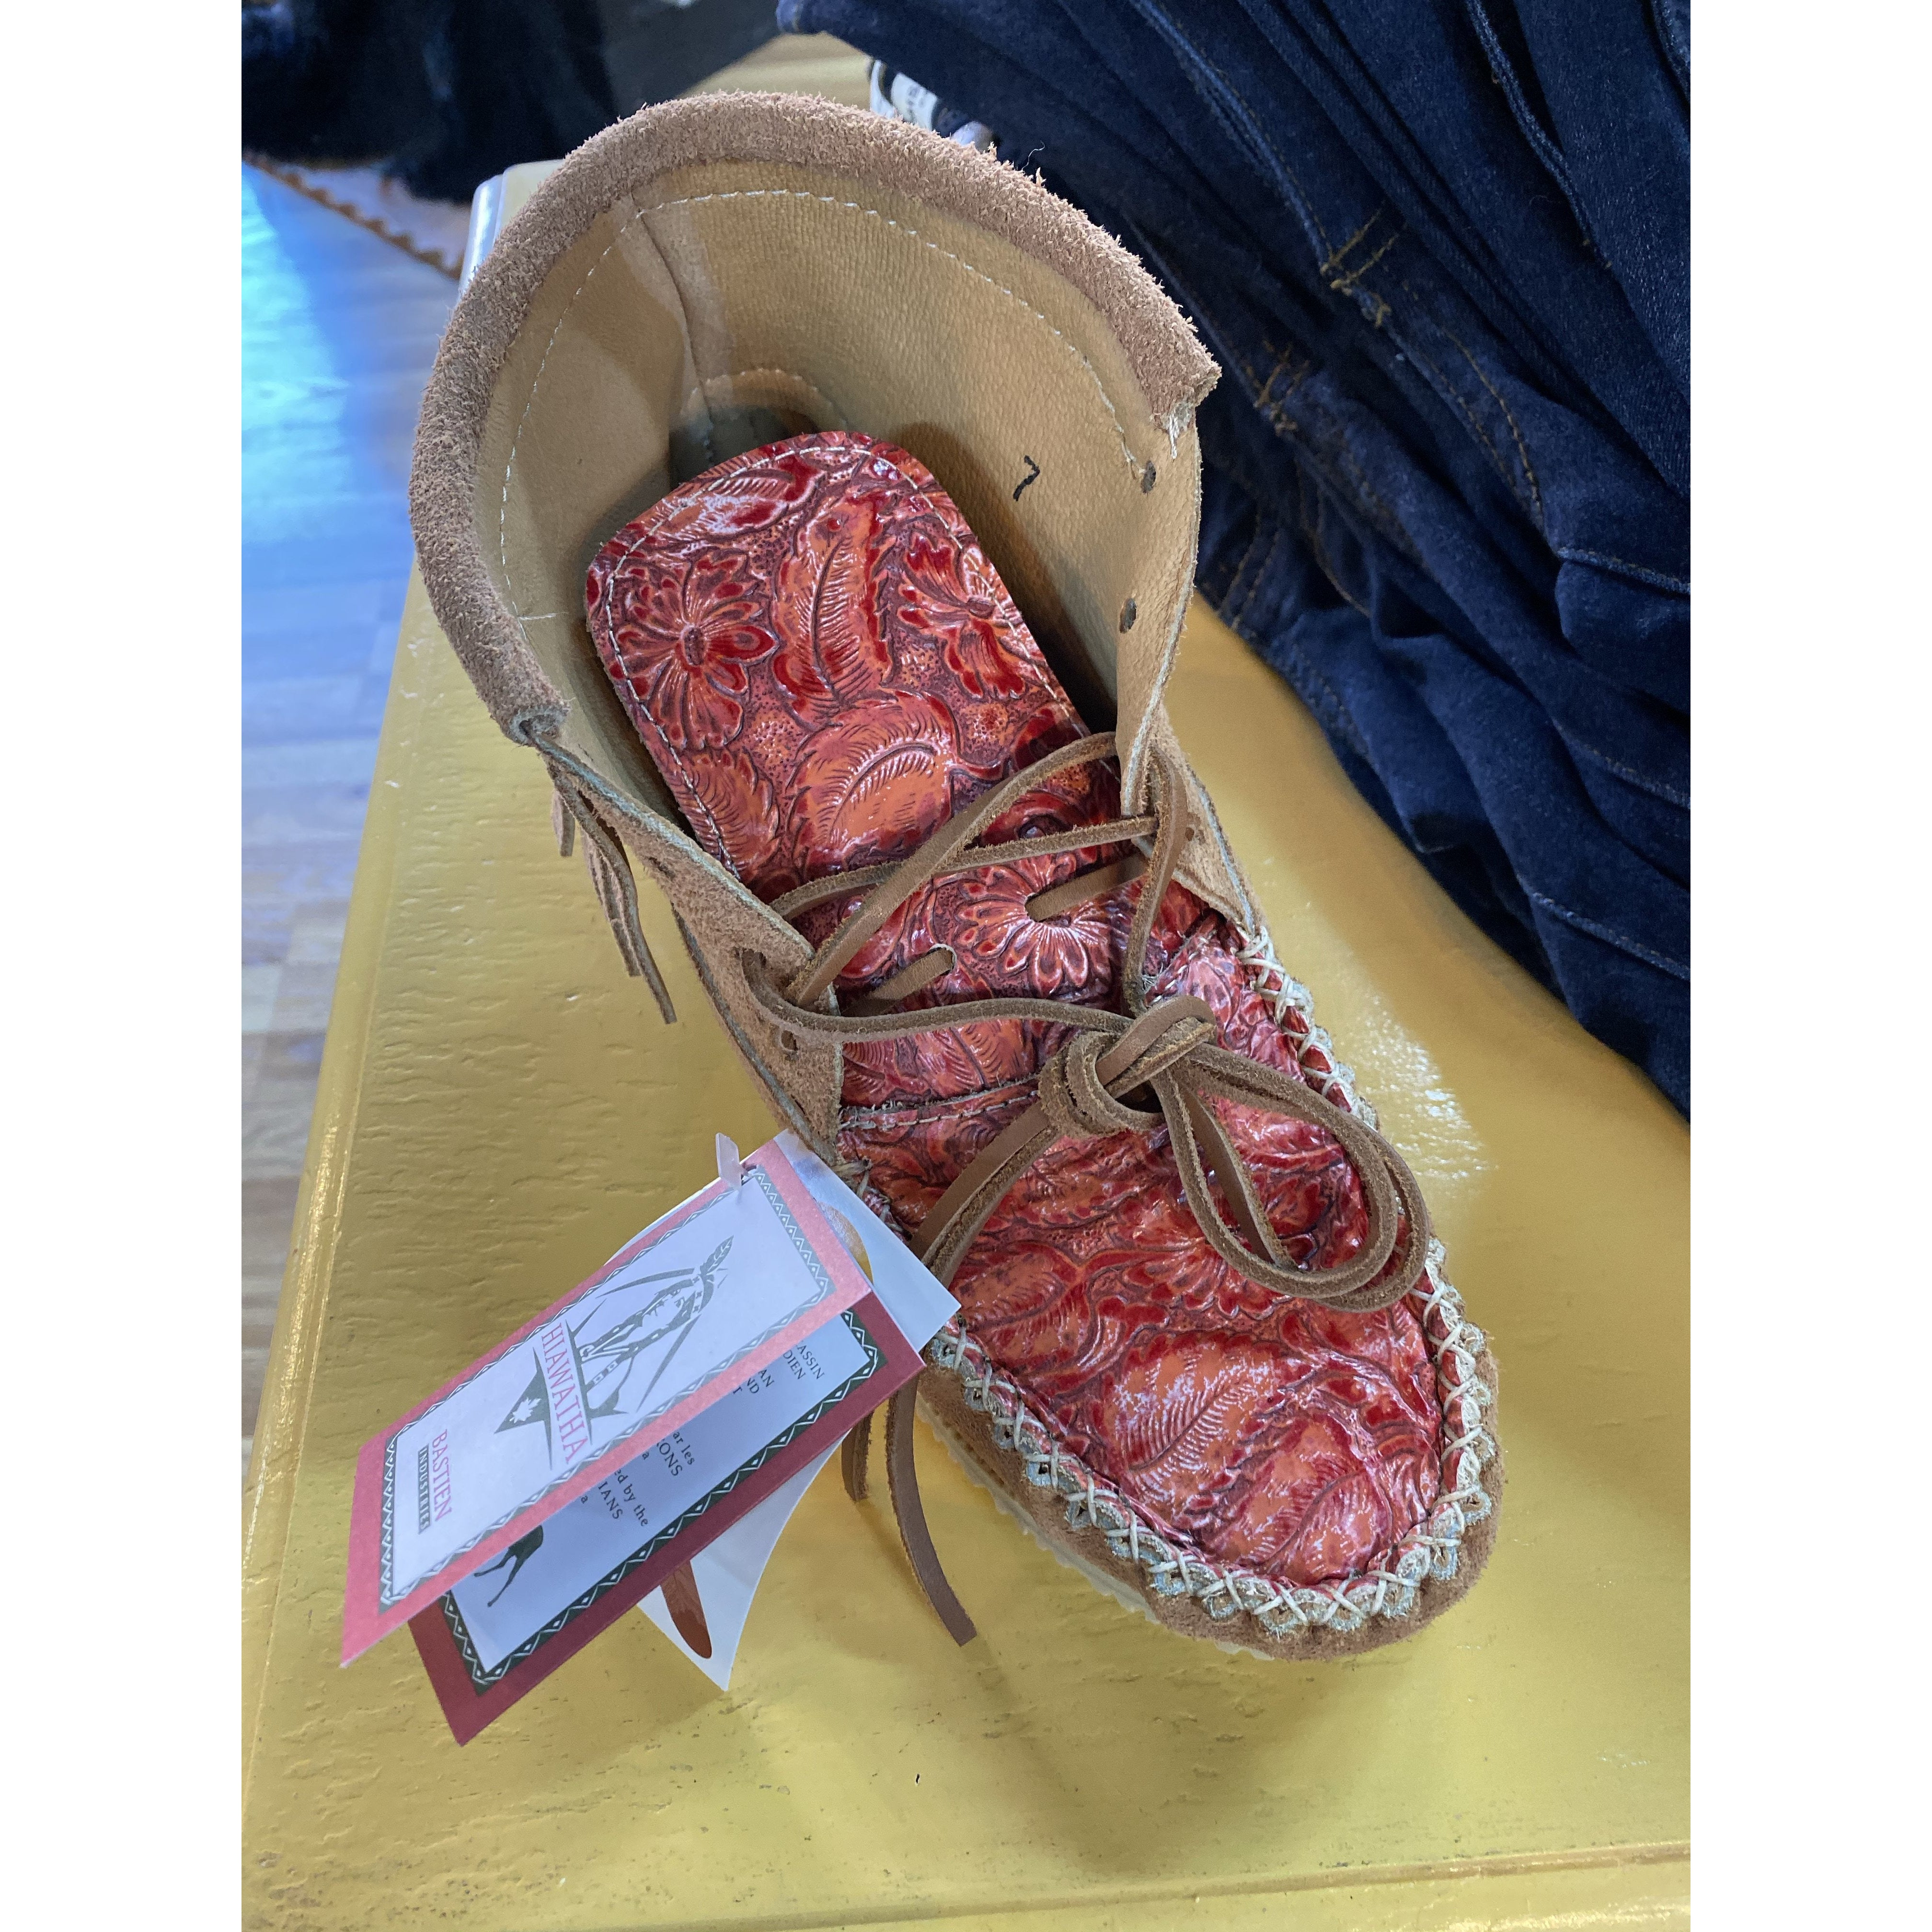 Handmade Moccassions-Shoes-[Womens_Boutique]-[NFR]-[Rodeo_Fashion]-[Western_Style]-Calamity's LLC